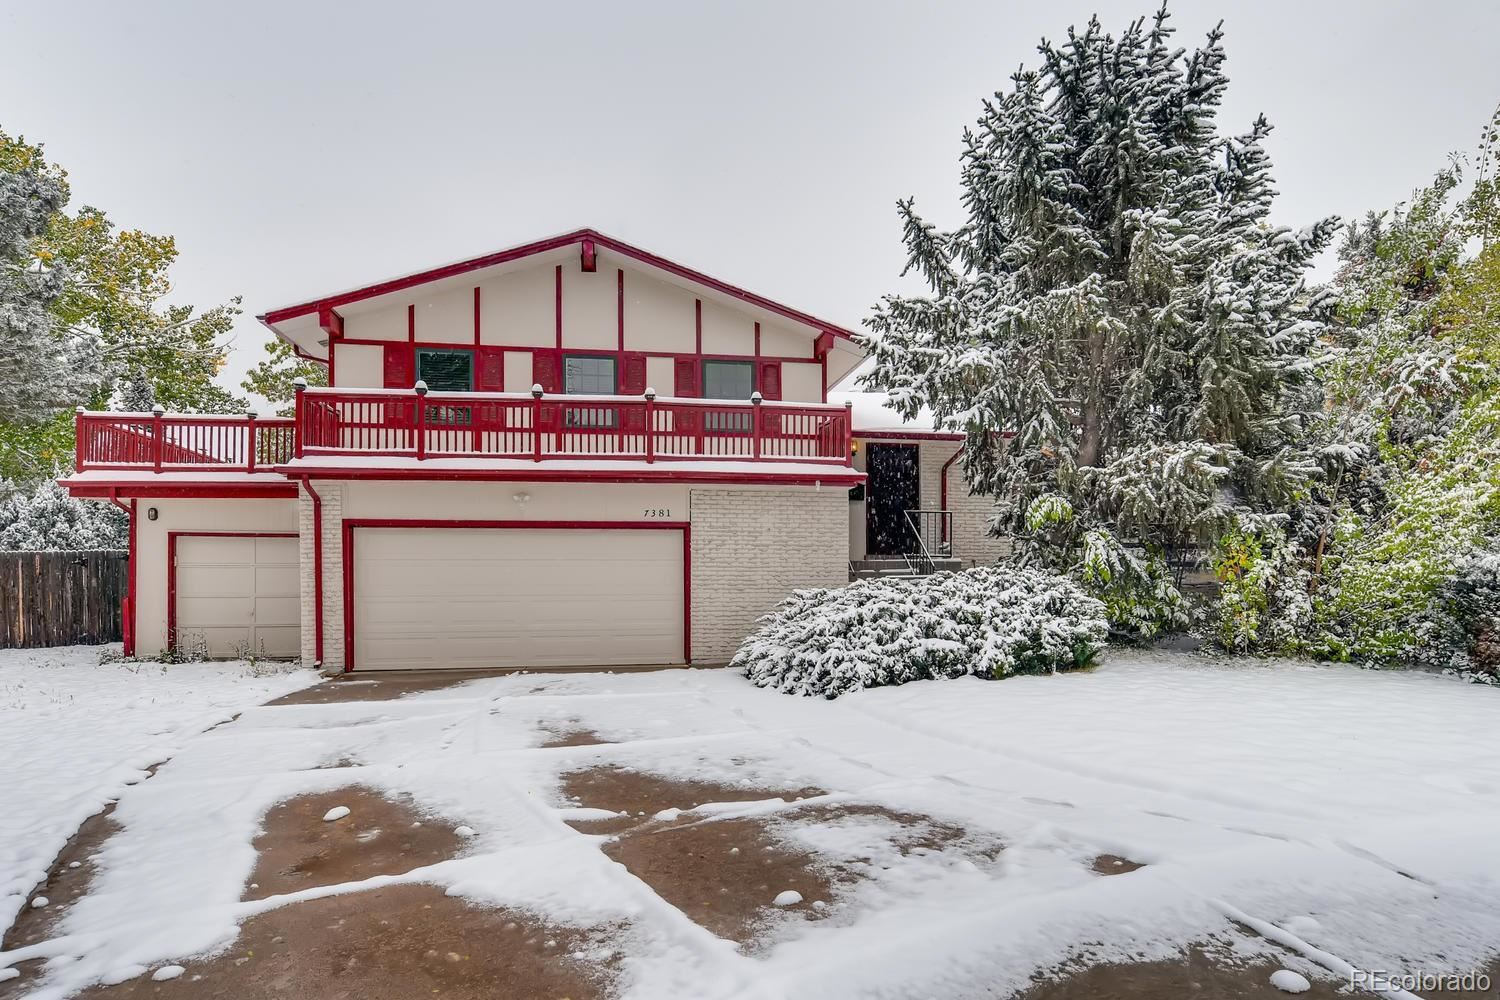 7381 E Hinsdale Court, Centennial, CO 80112 - #: 3787574